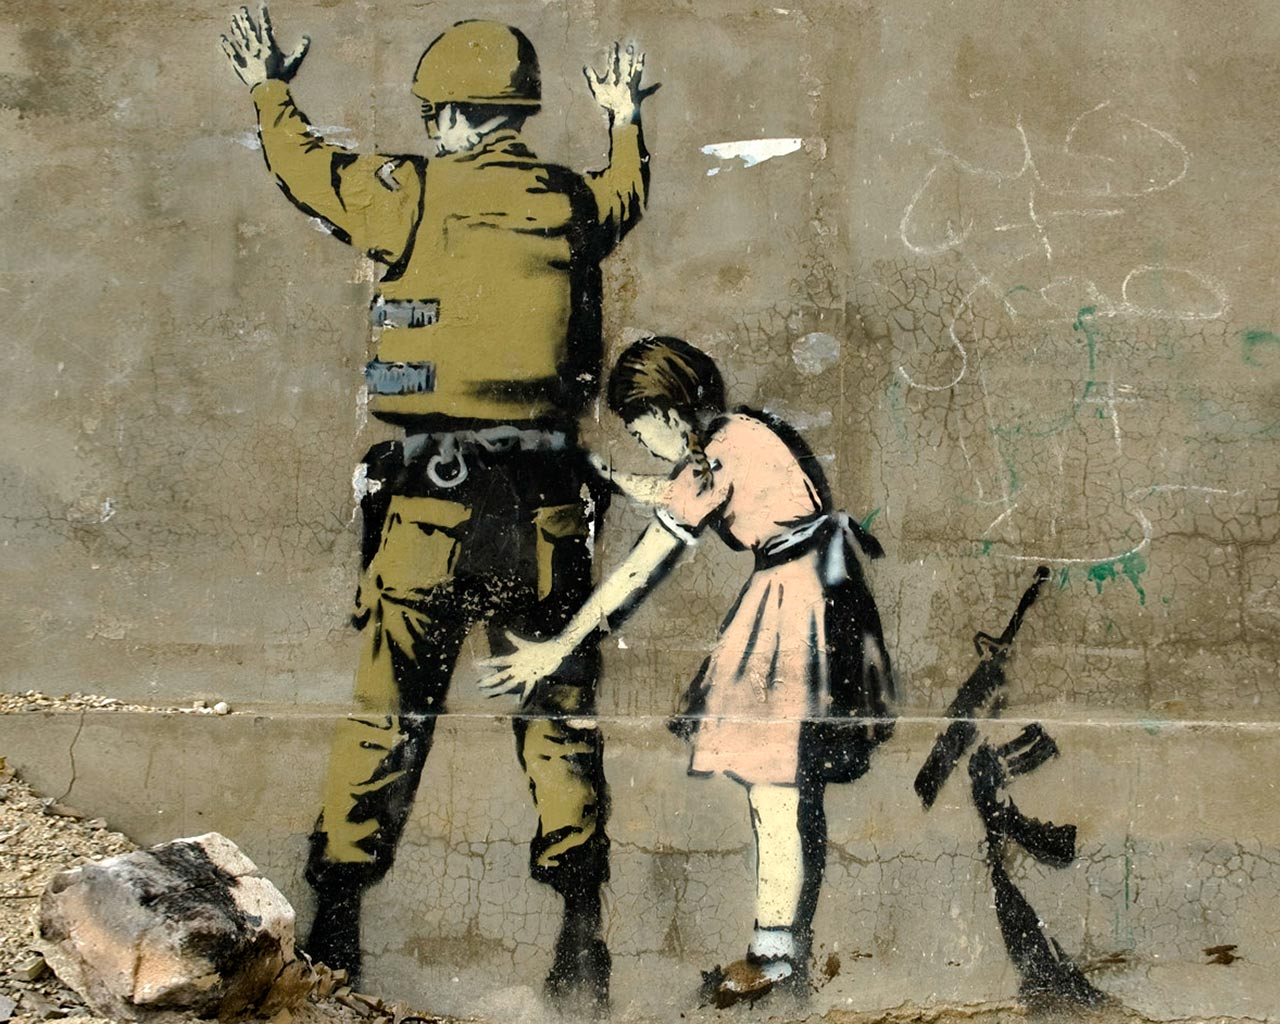 Banksy's latest works tackle technology, surveillance and our ...